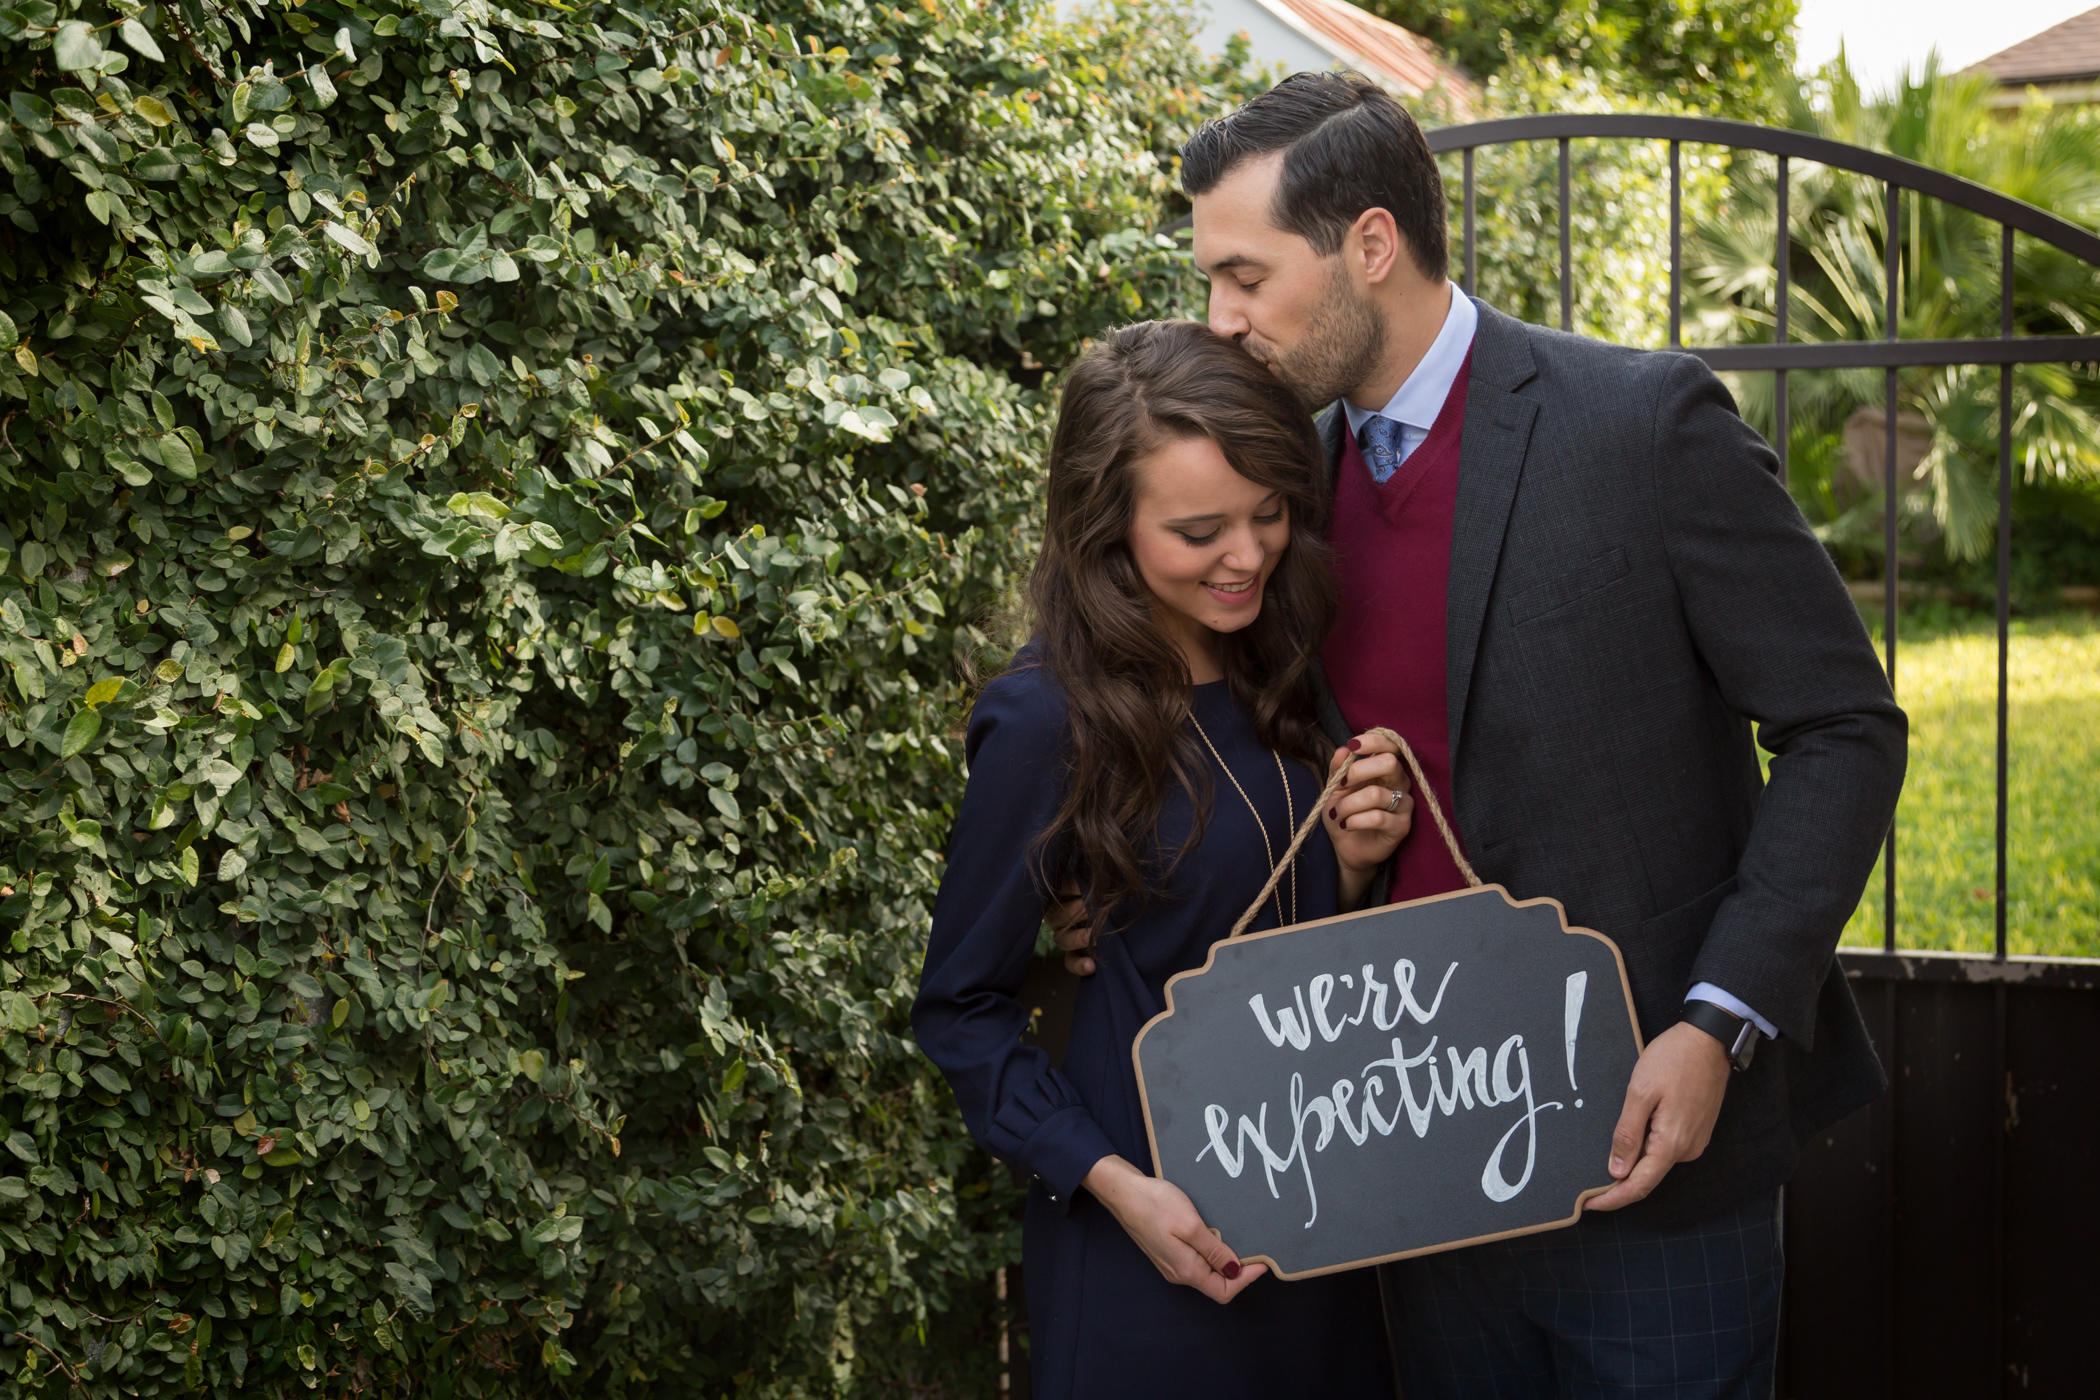 Baby Vuolo On The Way